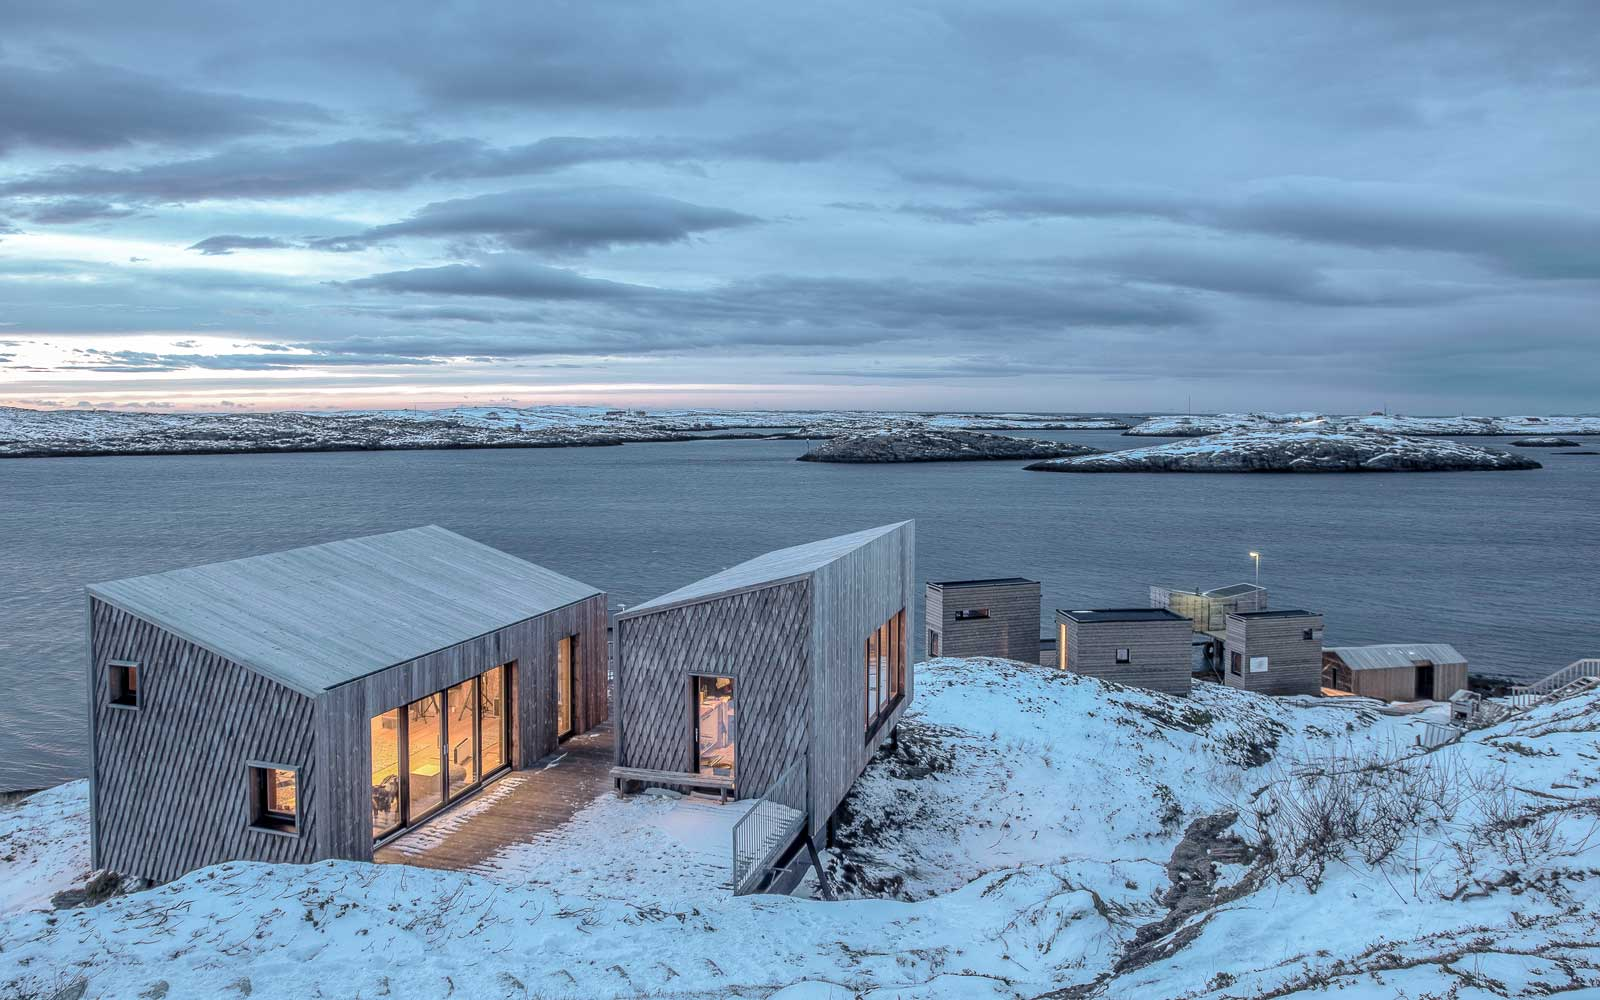 View at the Arctic Hideaway island in Norway